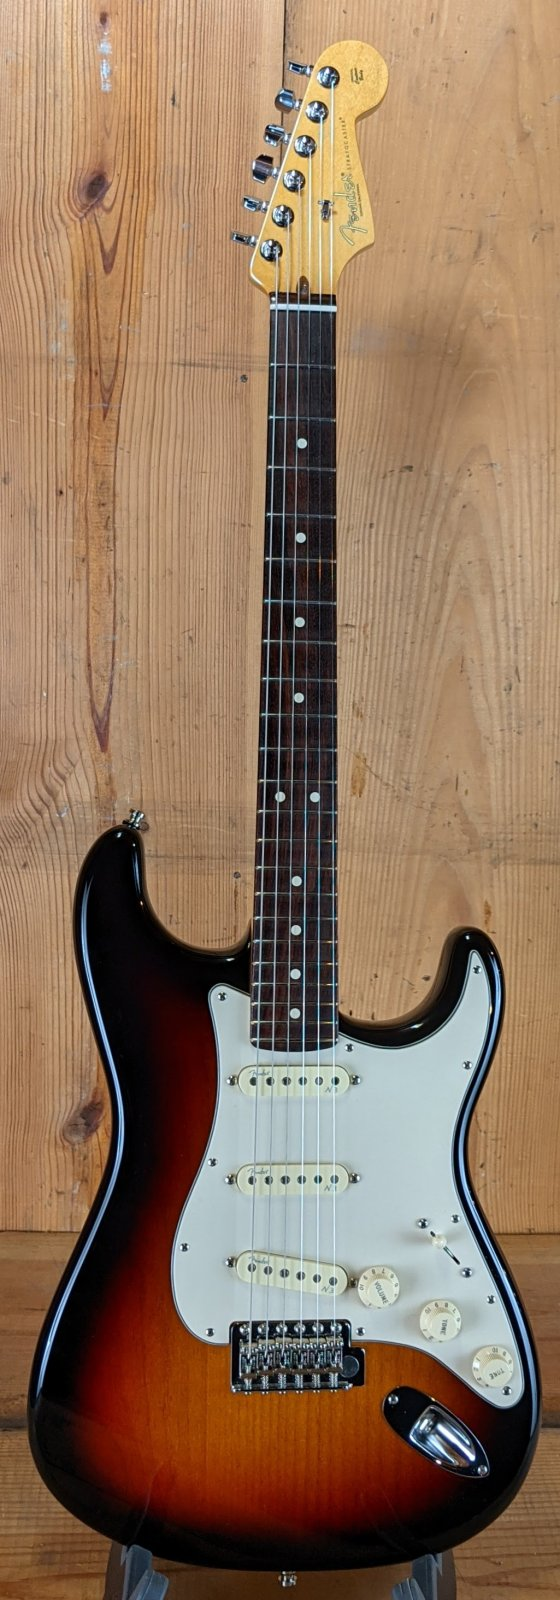 2018-20 Fender American Parts Stratocaster